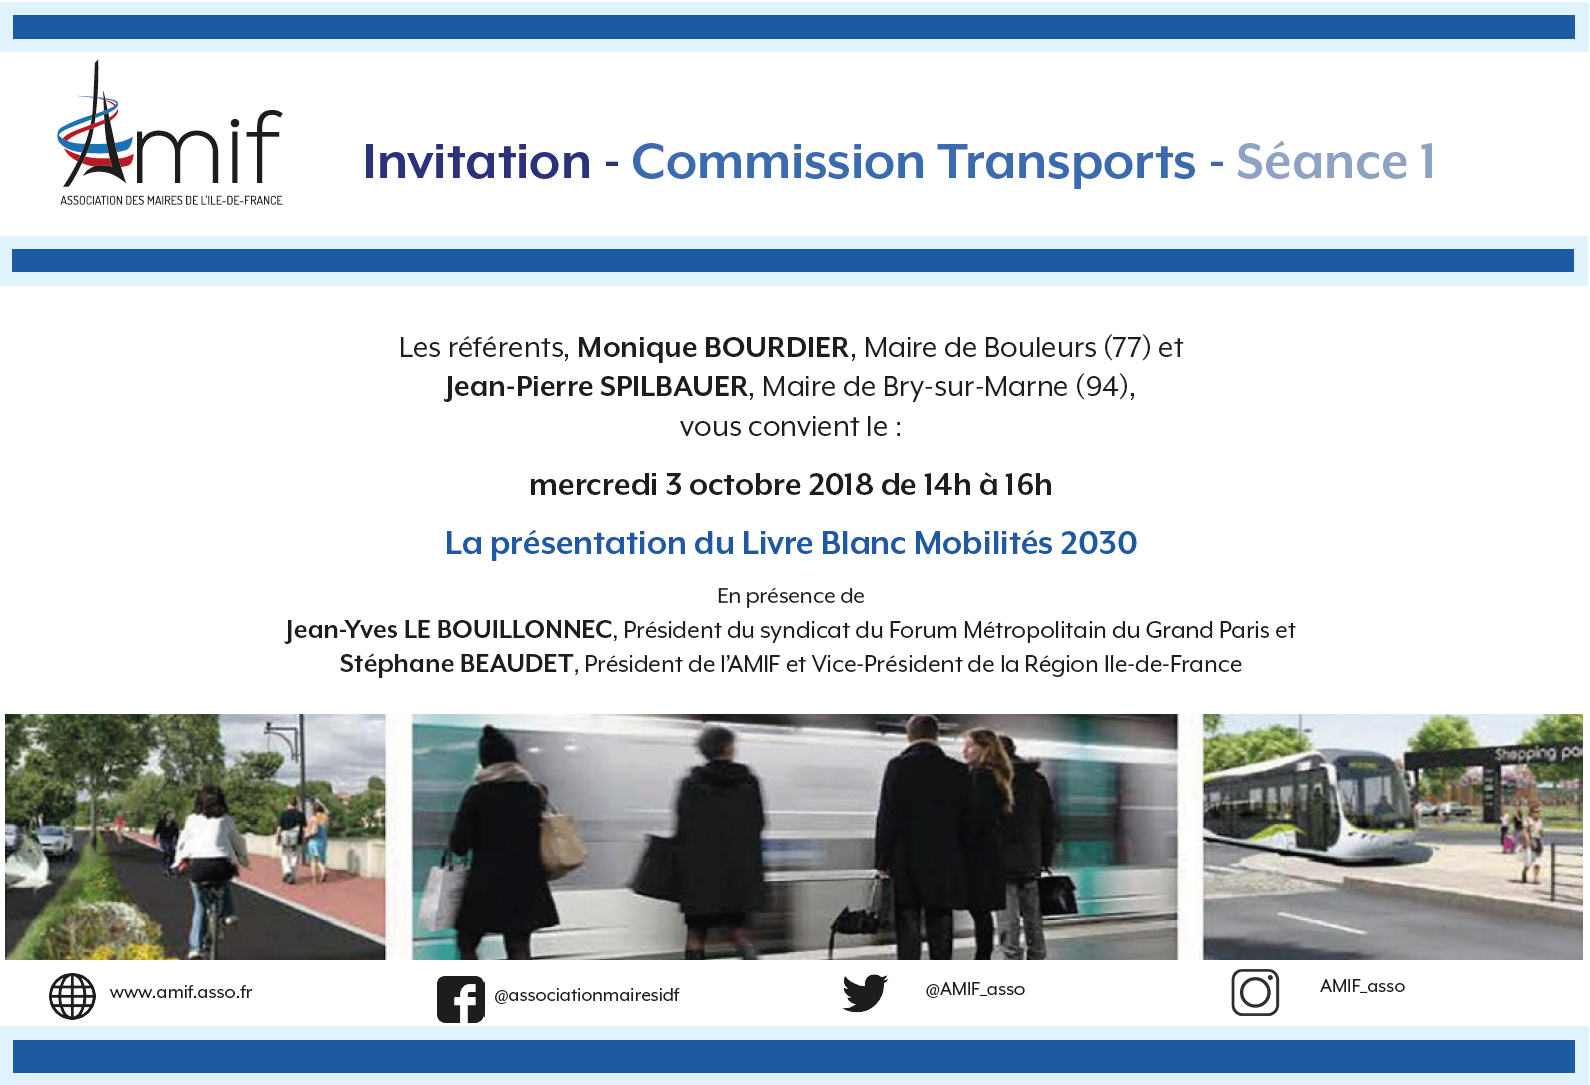 CommissionTransportsSeance103octobre2018v5